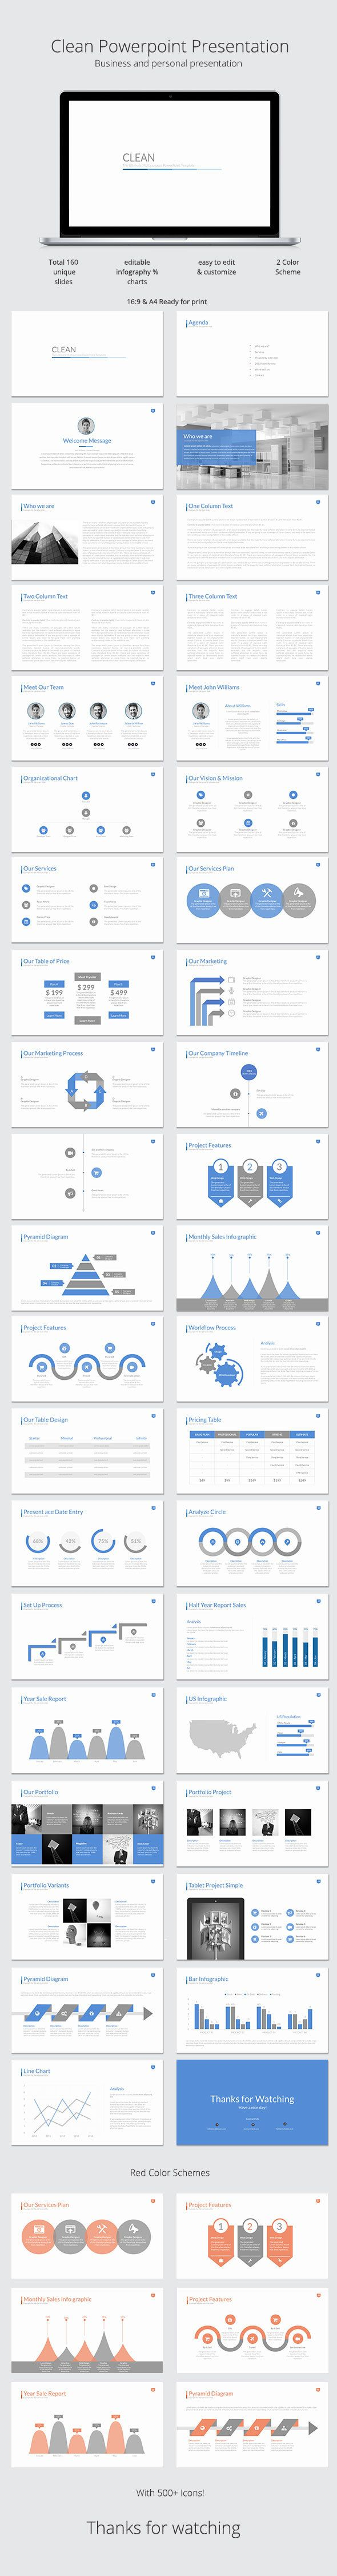 Coolmathgamesus  Seductive  Ideas About Powerpoint Presentations On Pinterest With Remarkable Clean Powerpoint Template With Awesome Timer Powerpoint Also First Aid Merit Badge Powerpoint In Addition Swot Powerpoint And Dynamic Powerpoint As Well As World War I Powerpoint Additionally Charts In Powerpoint From Pinterestcom With Coolmathgamesus  Remarkable  Ideas About Powerpoint Presentations On Pinterest With Awesome Clean Powerpoint Template And Seductive Timer Powerpoint Also First Aid Merit Badge Powerpoint In Addition Swot Powerpoint From Pinterestcom